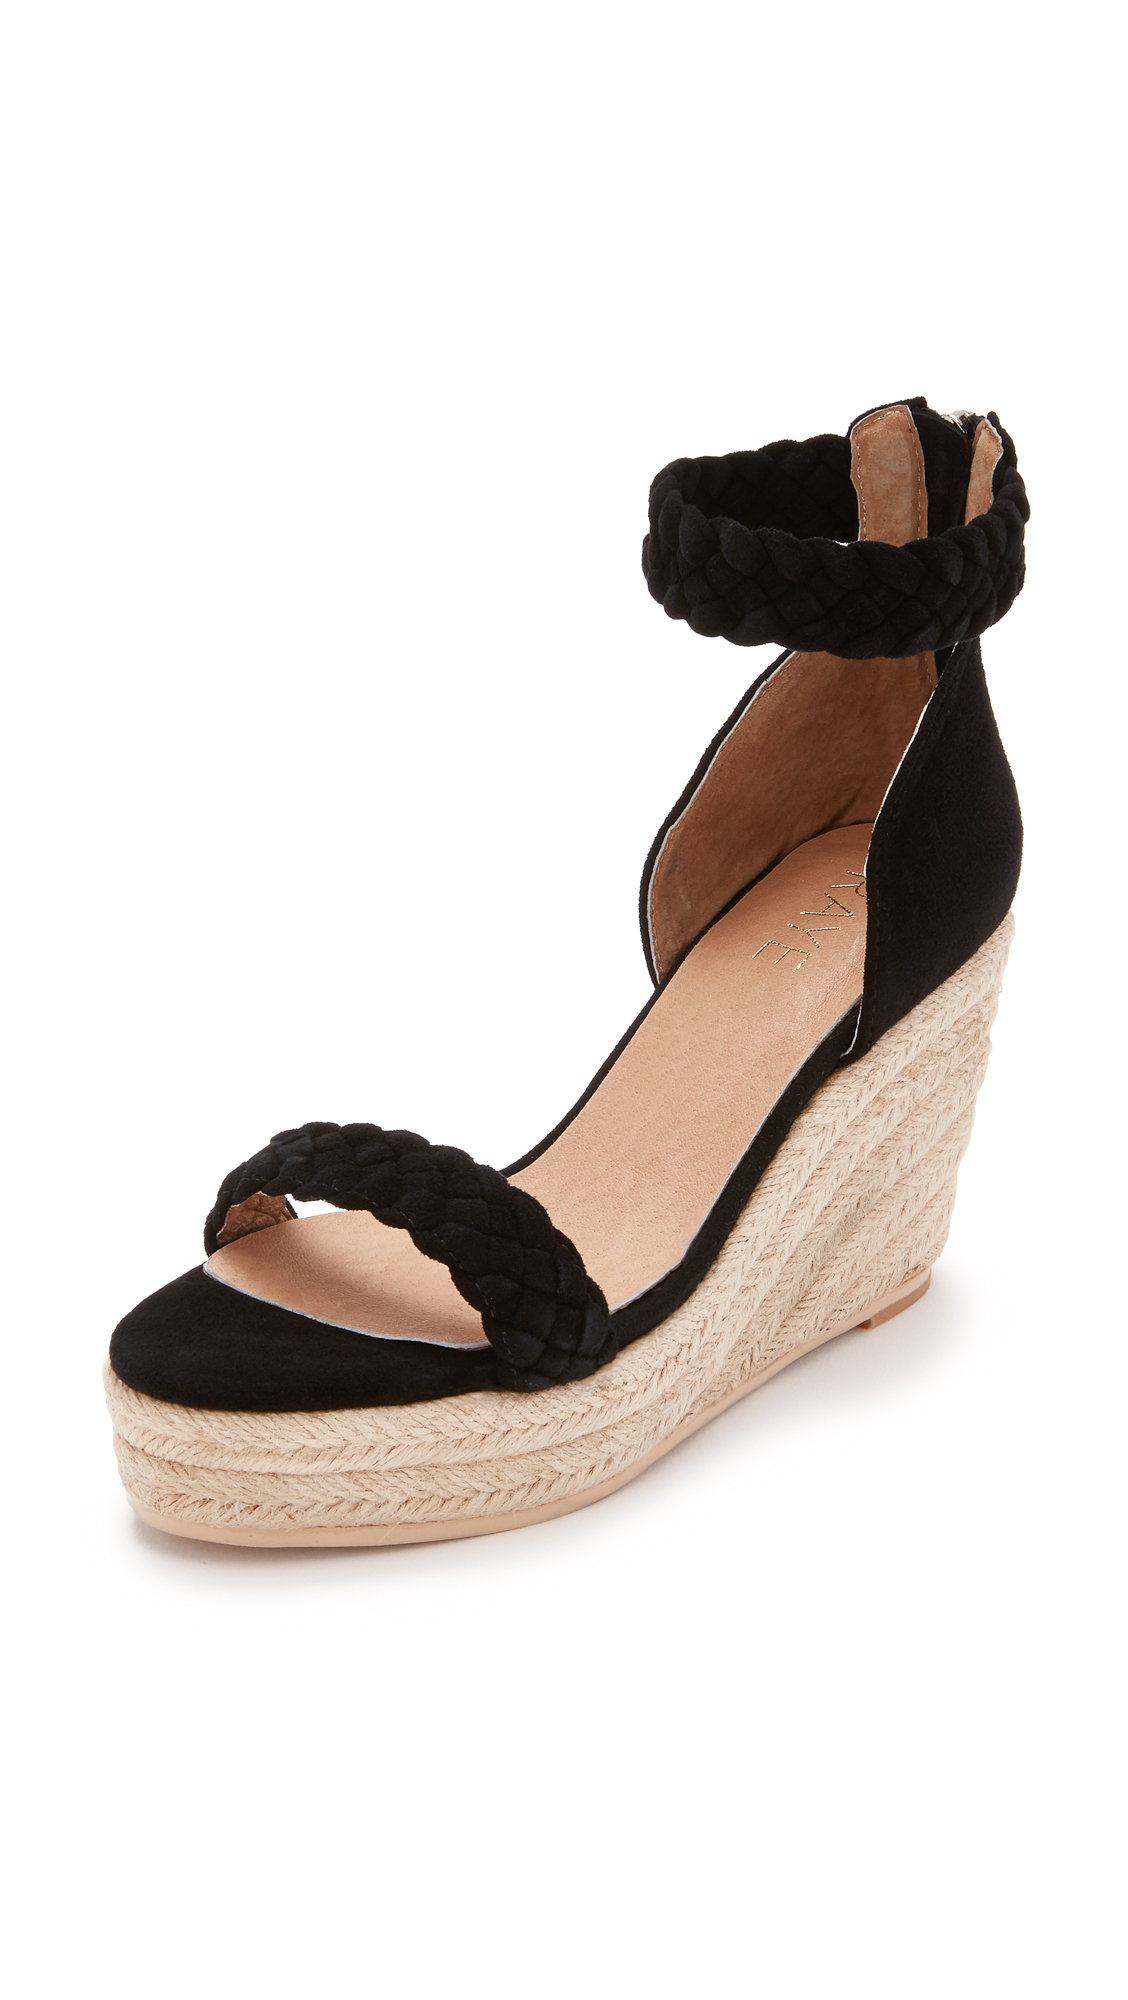 Raye Dara Espadrille Wedges - Black